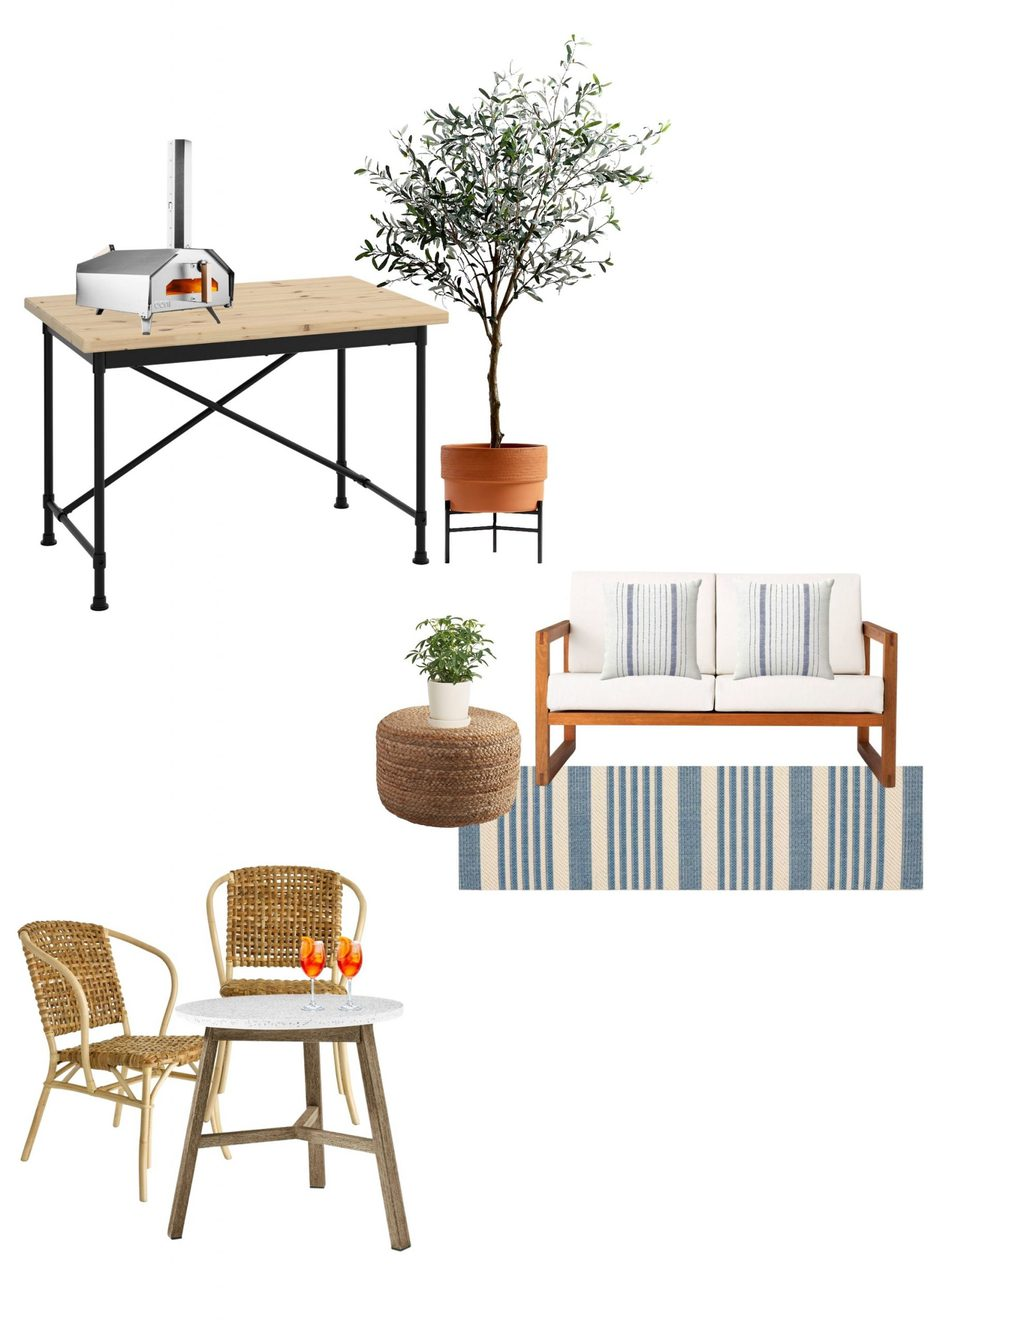 A mood board for the patio makeover project.